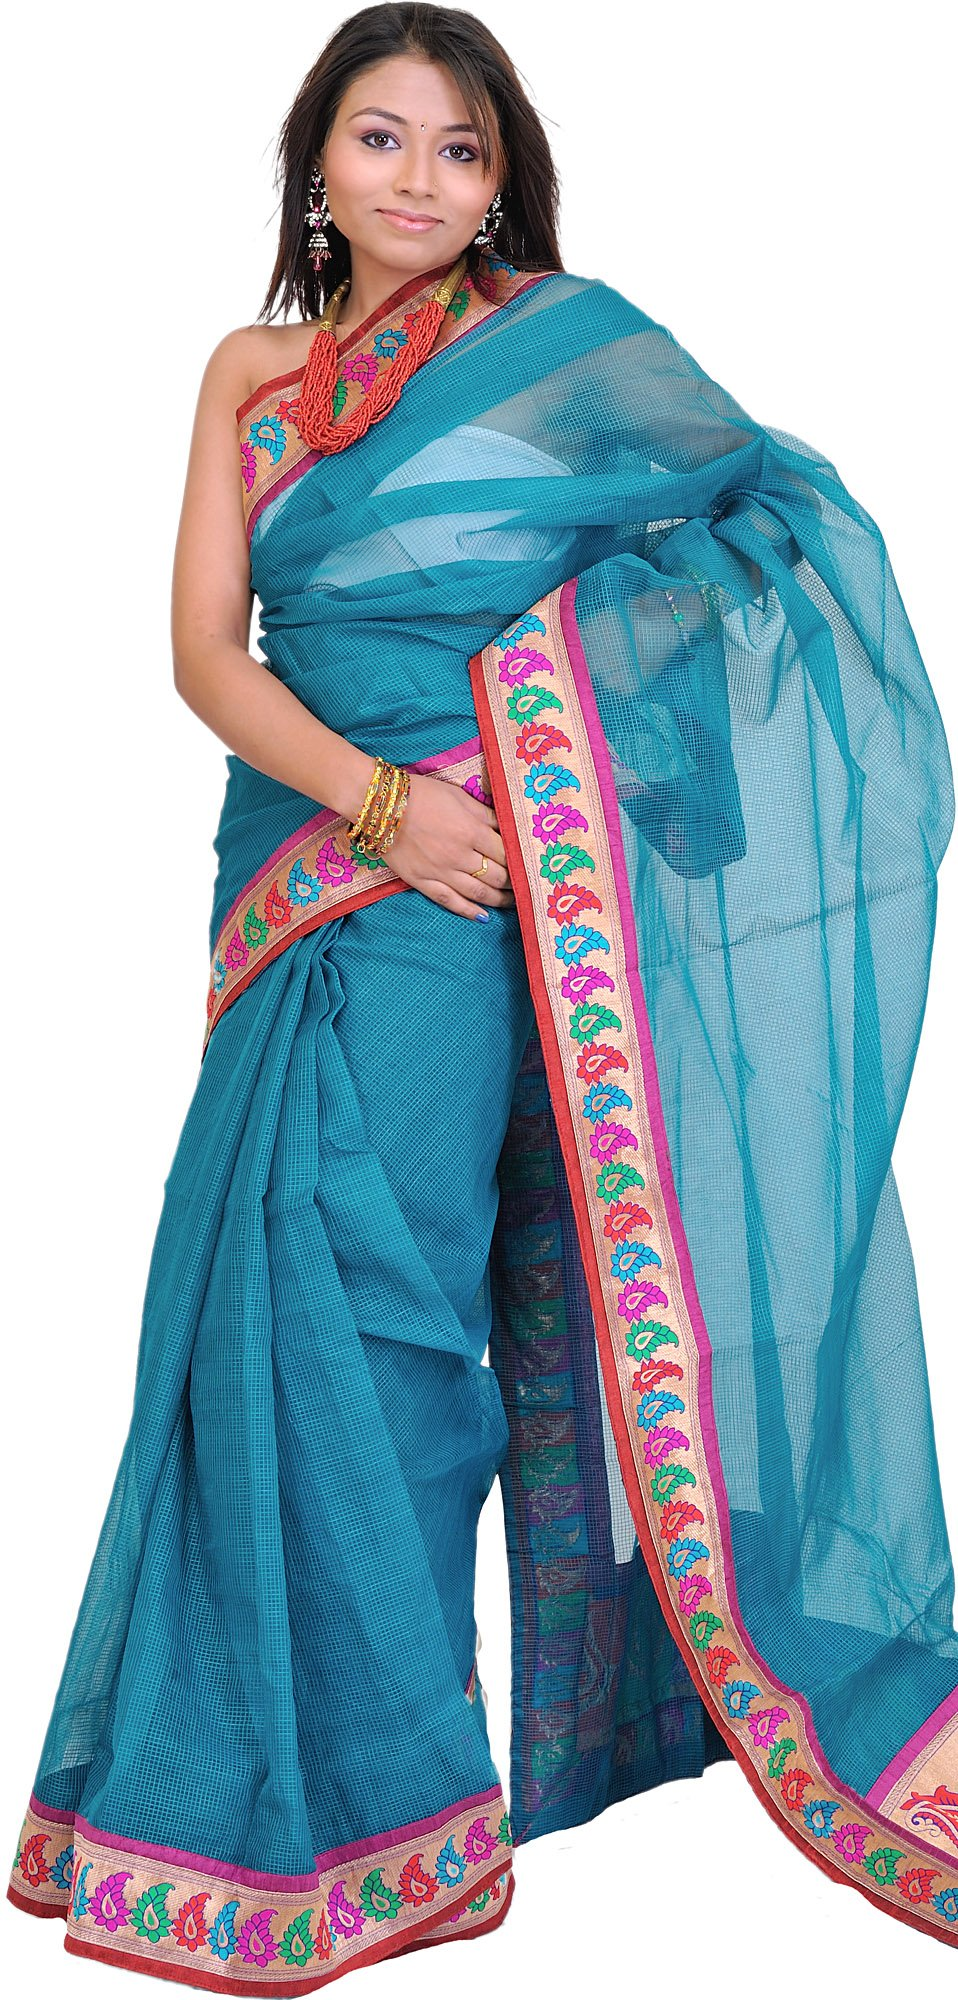 Exotic India Sari with Fine Woven Checks and Brocaded P - Color Resin Green